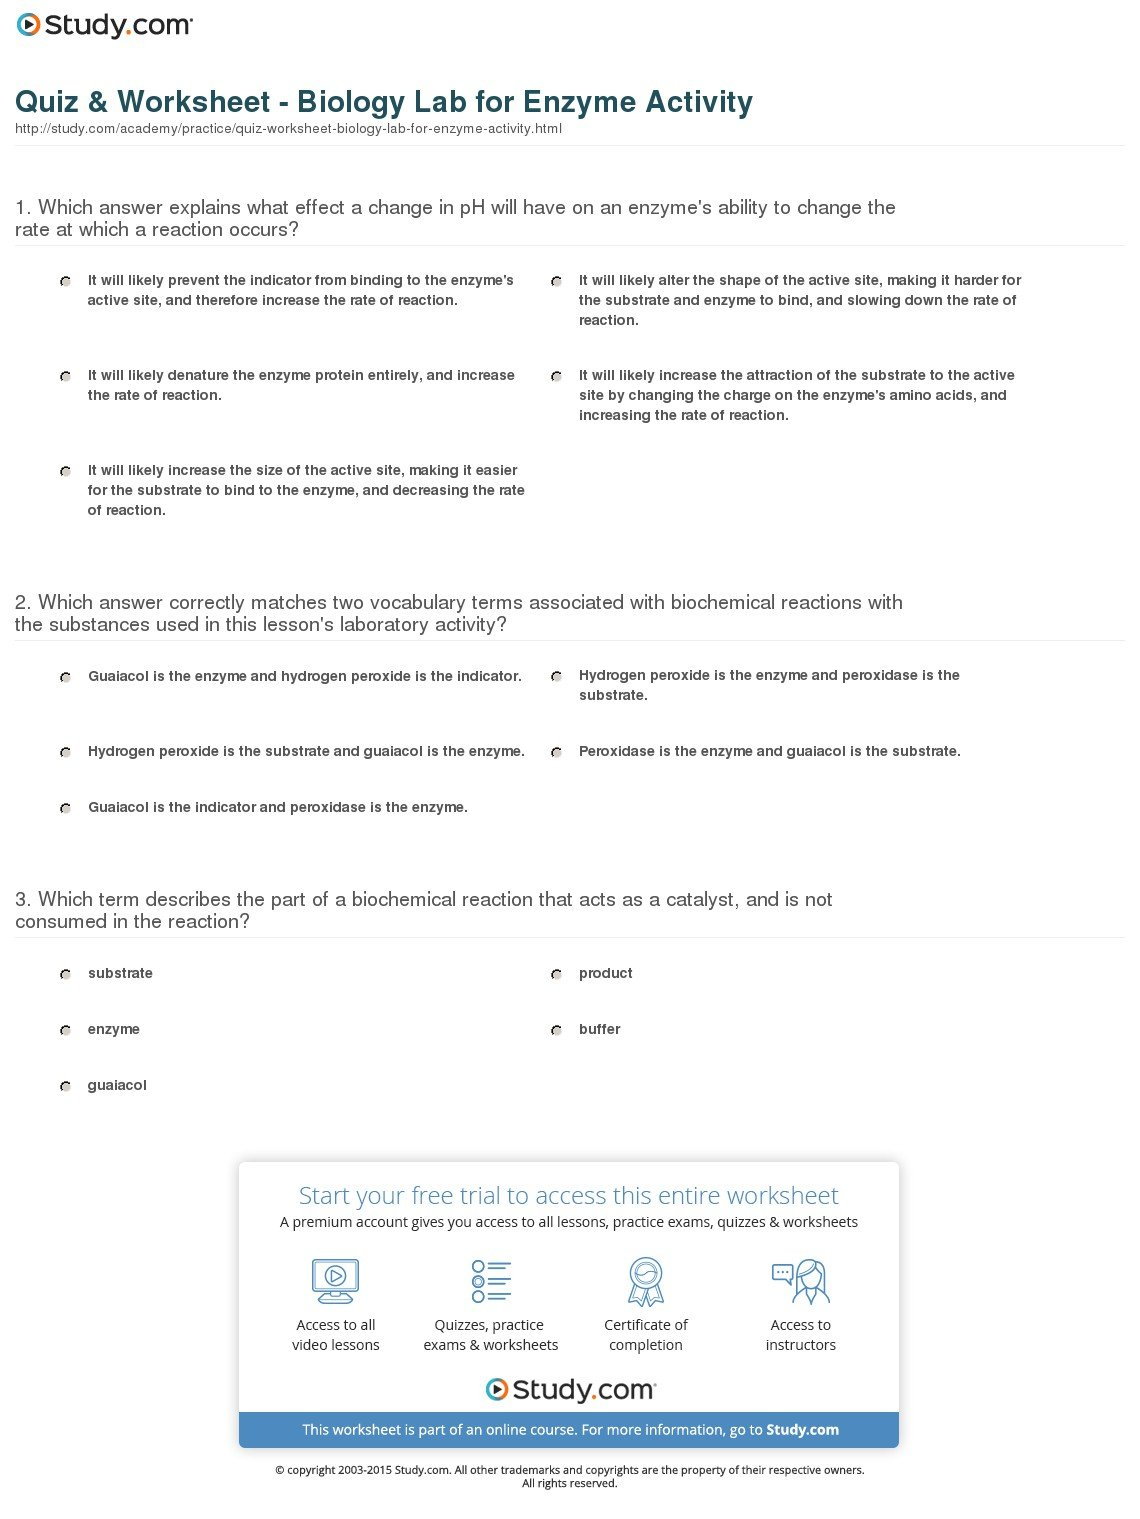 Quiz  Worksheet  Biology Lab For Enzyme Activity  Study Along With Enzyme Reactions Worksheet